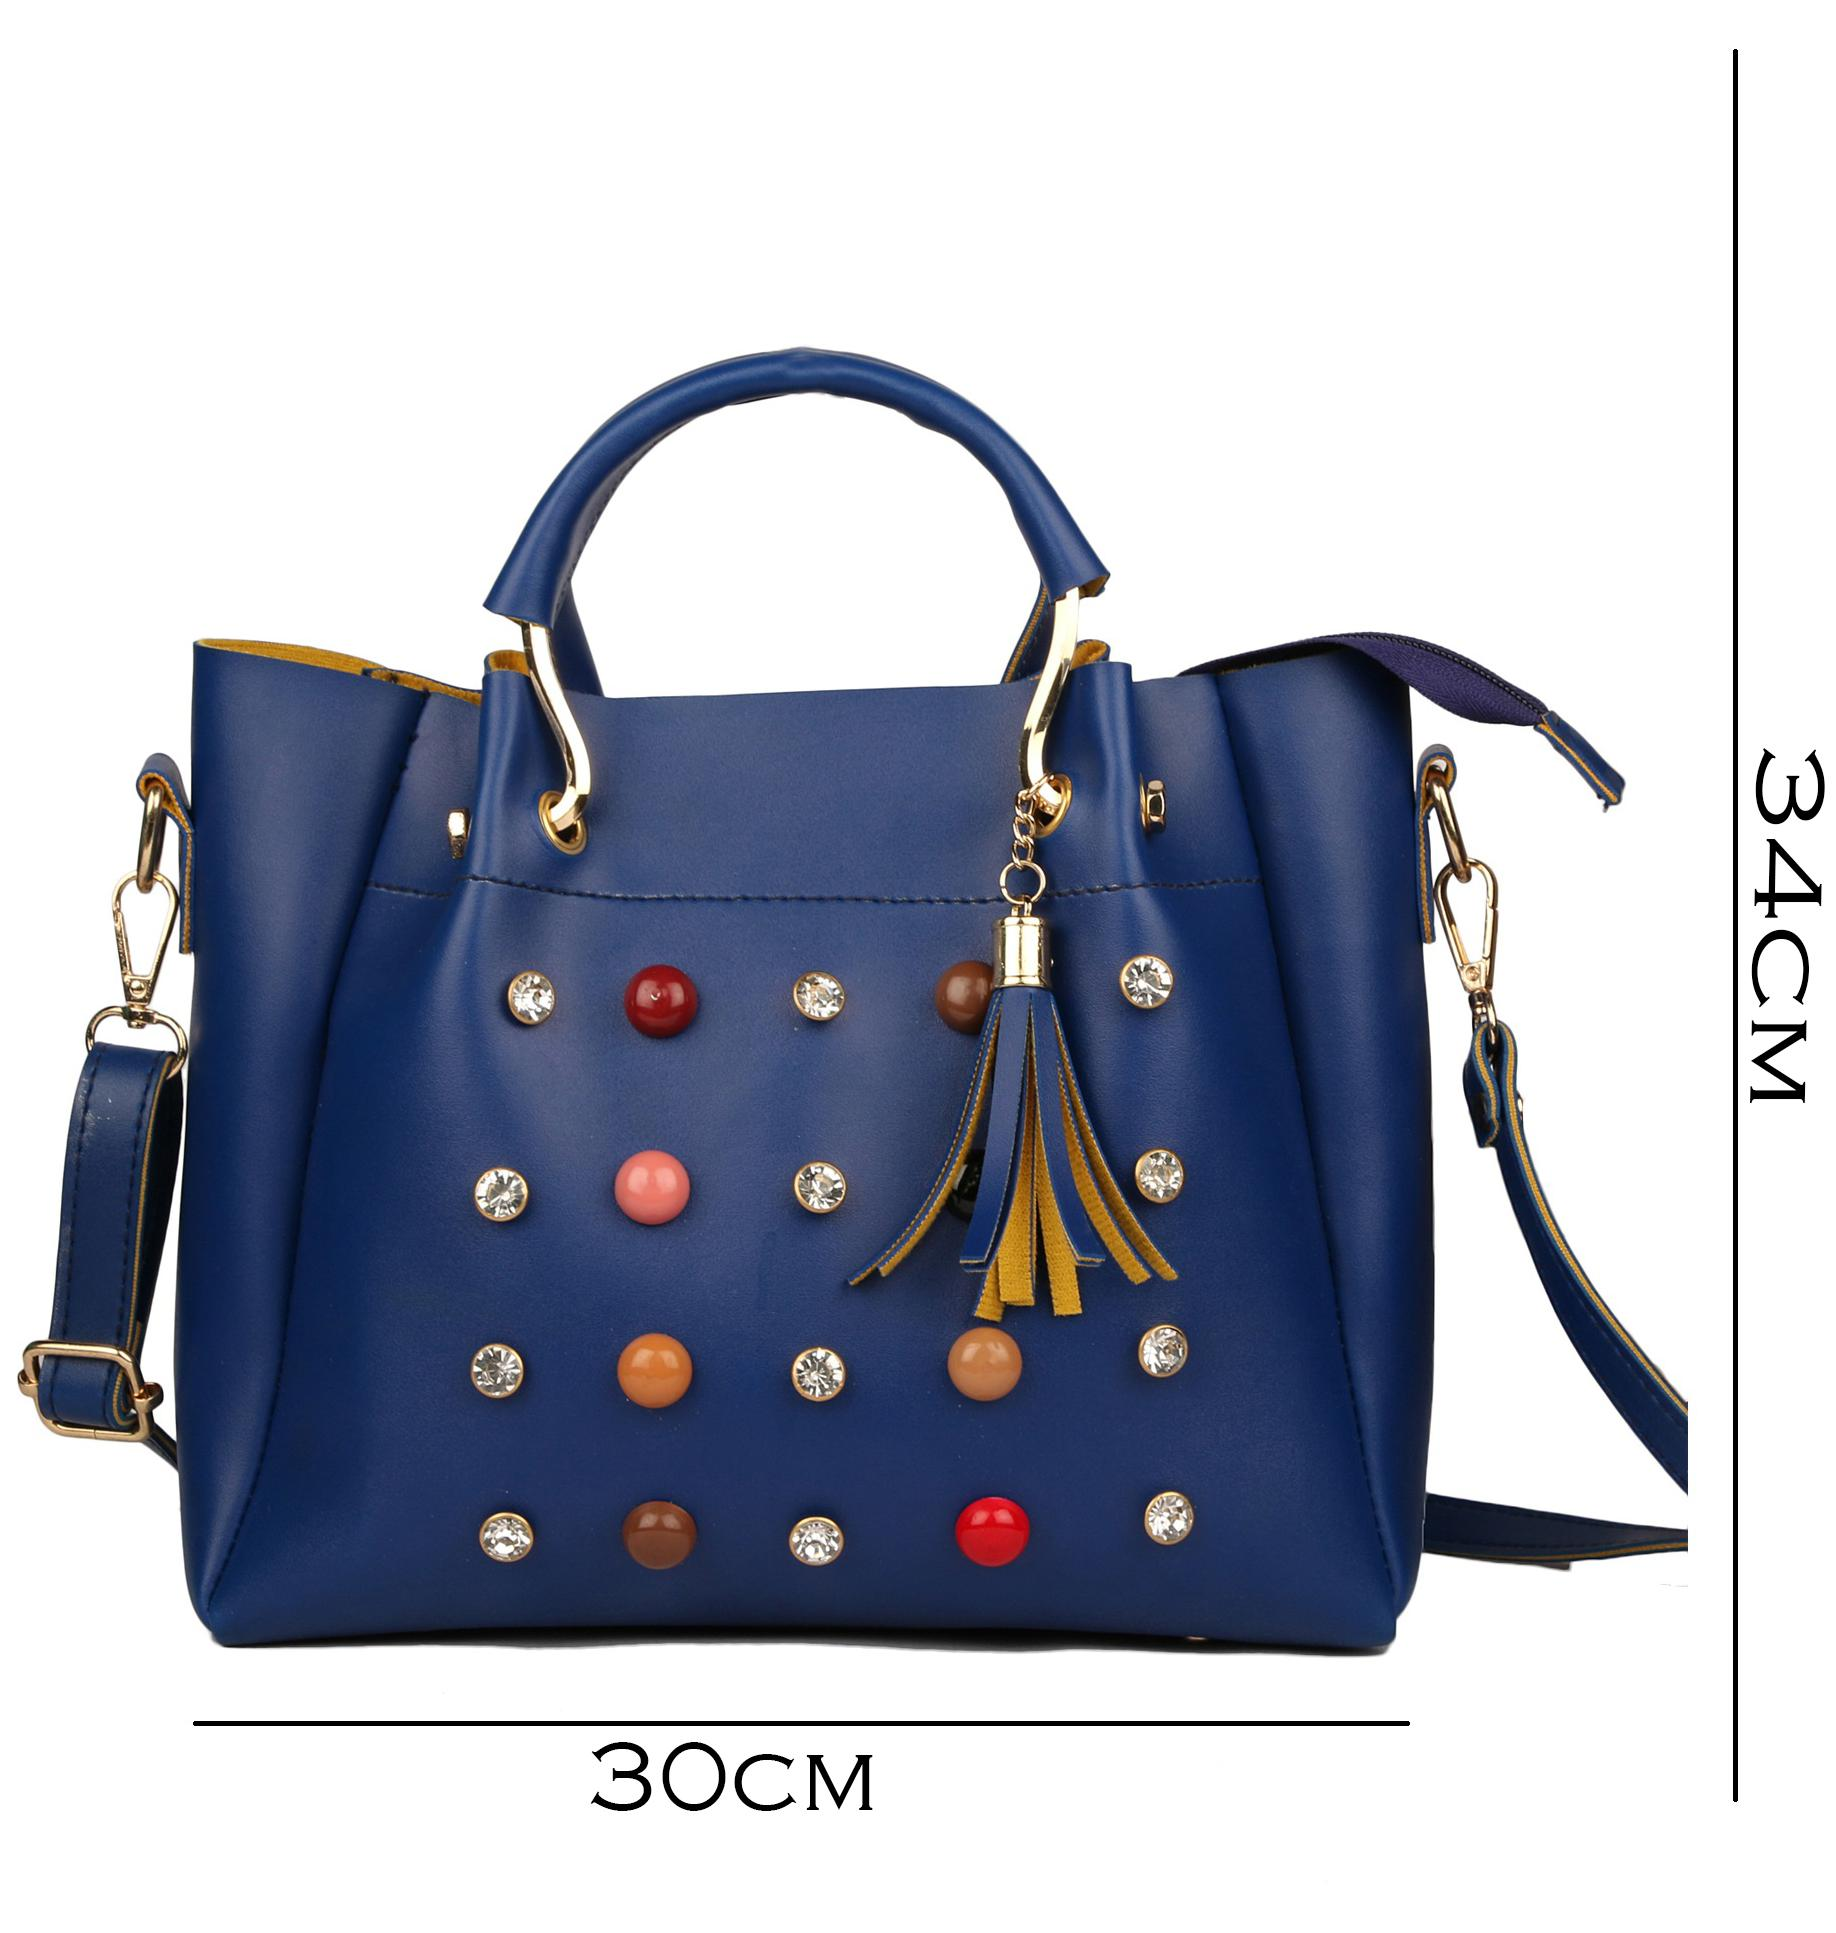 Roseberries Women Handbag Navy Blue Color